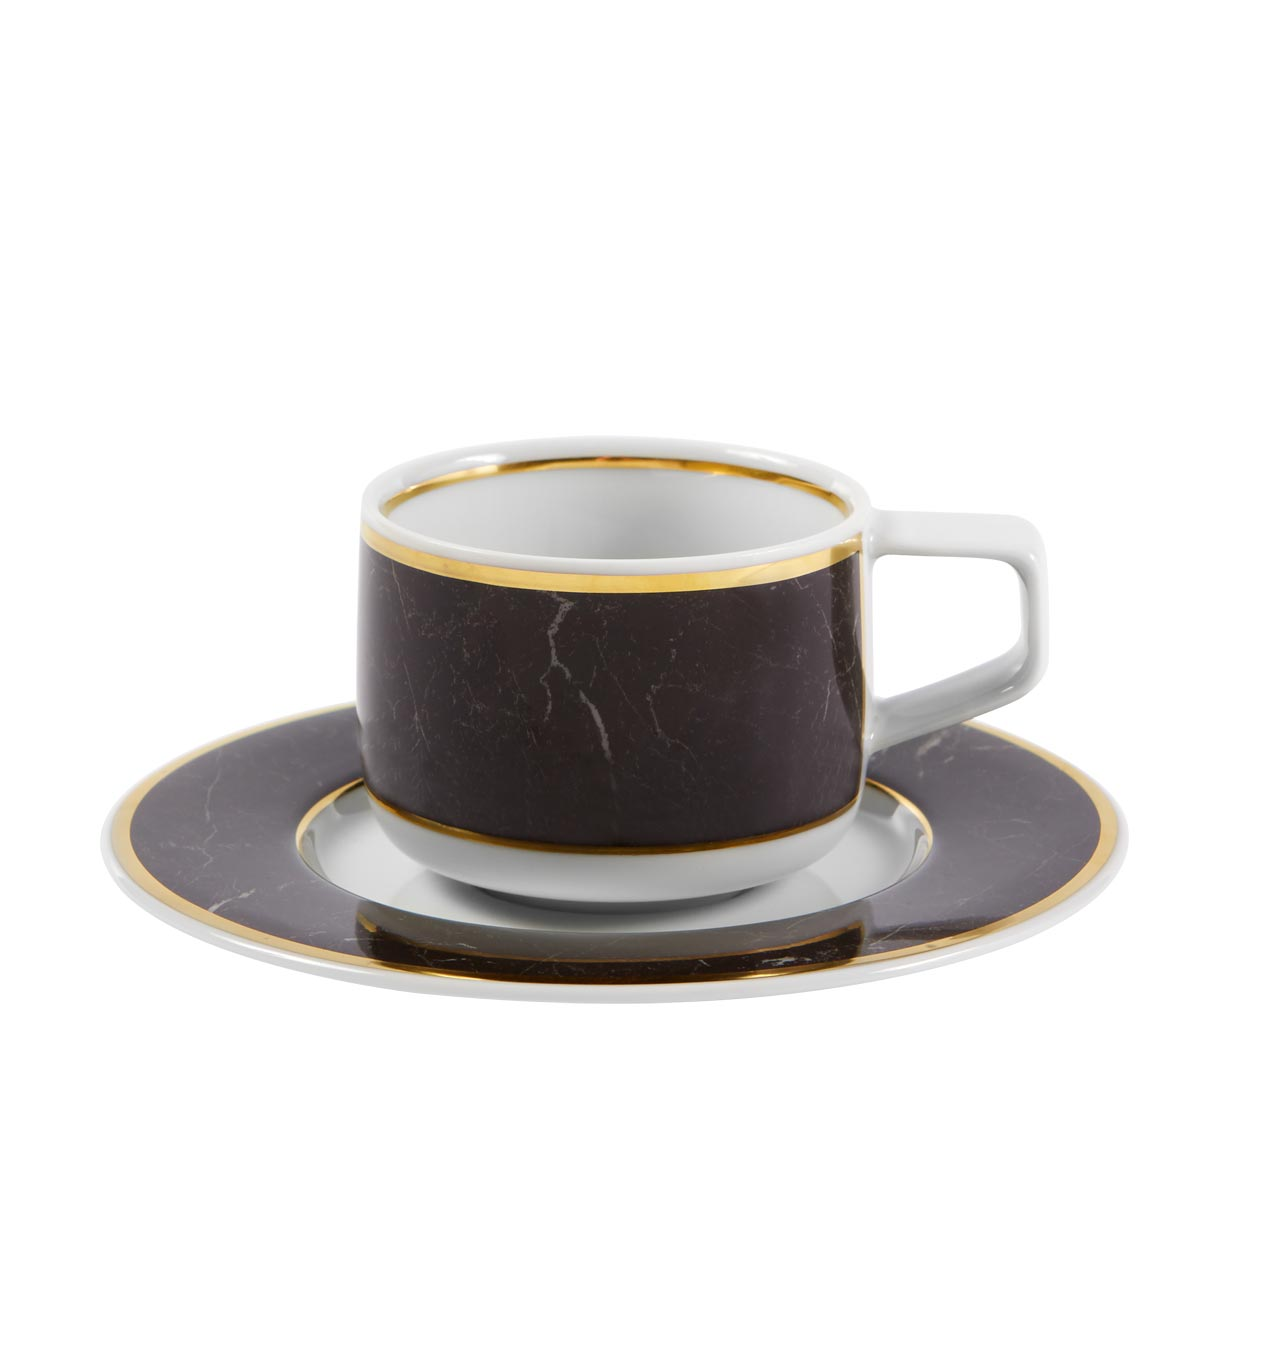 Carrara Coffee Cup & Saucer Set of 4